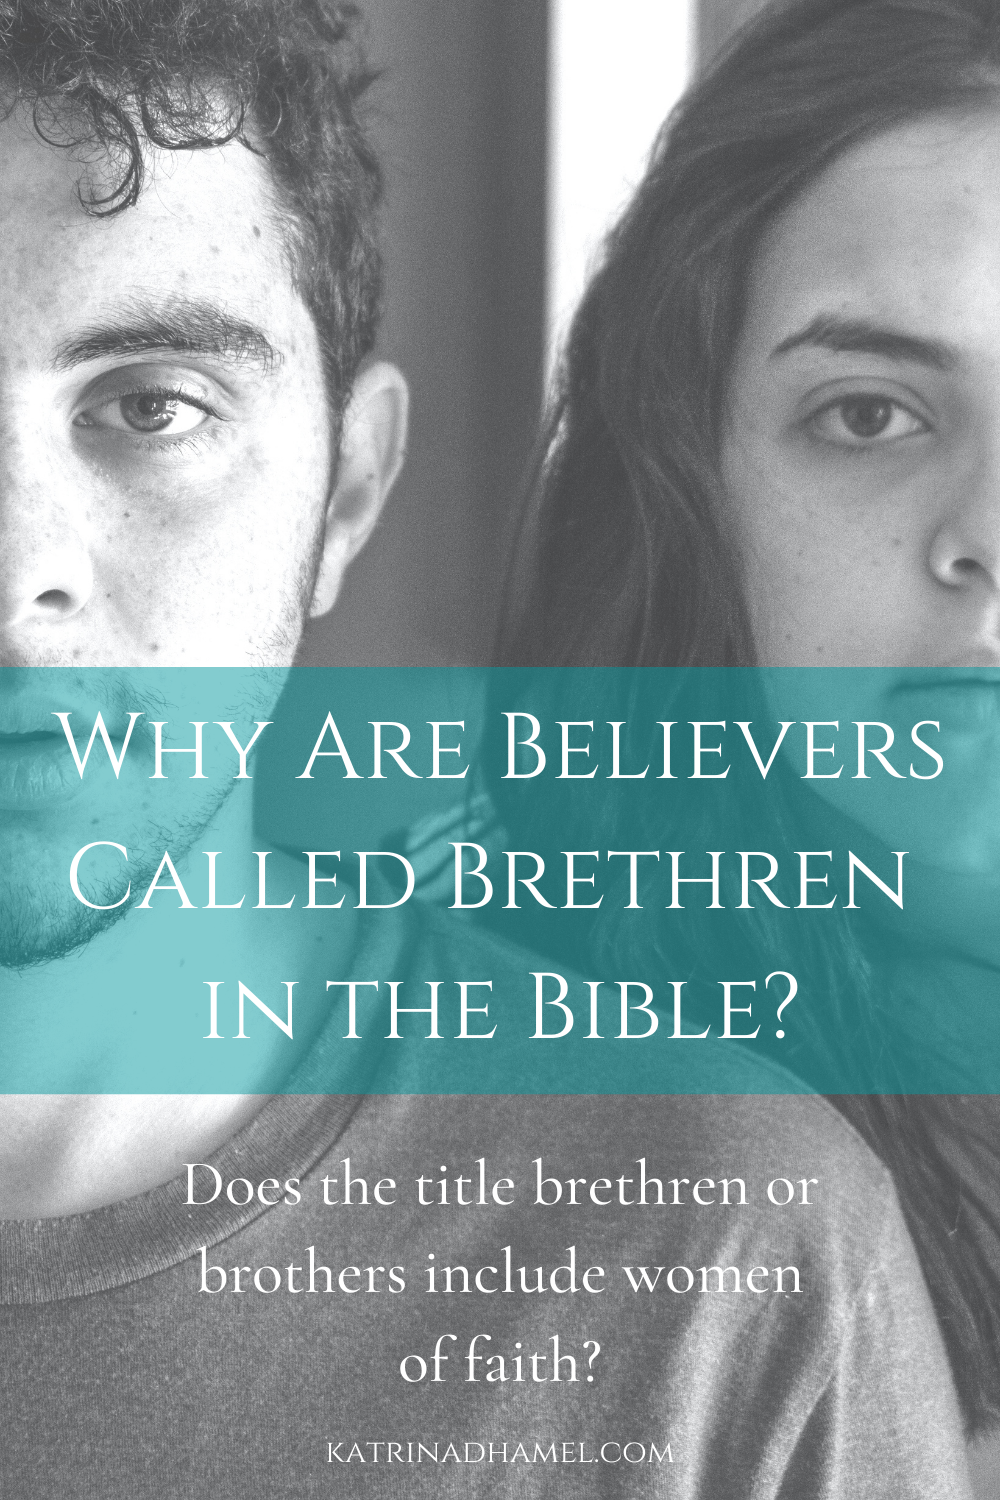 Believers called brethren in the Bible, a man and a woman's face in black and white